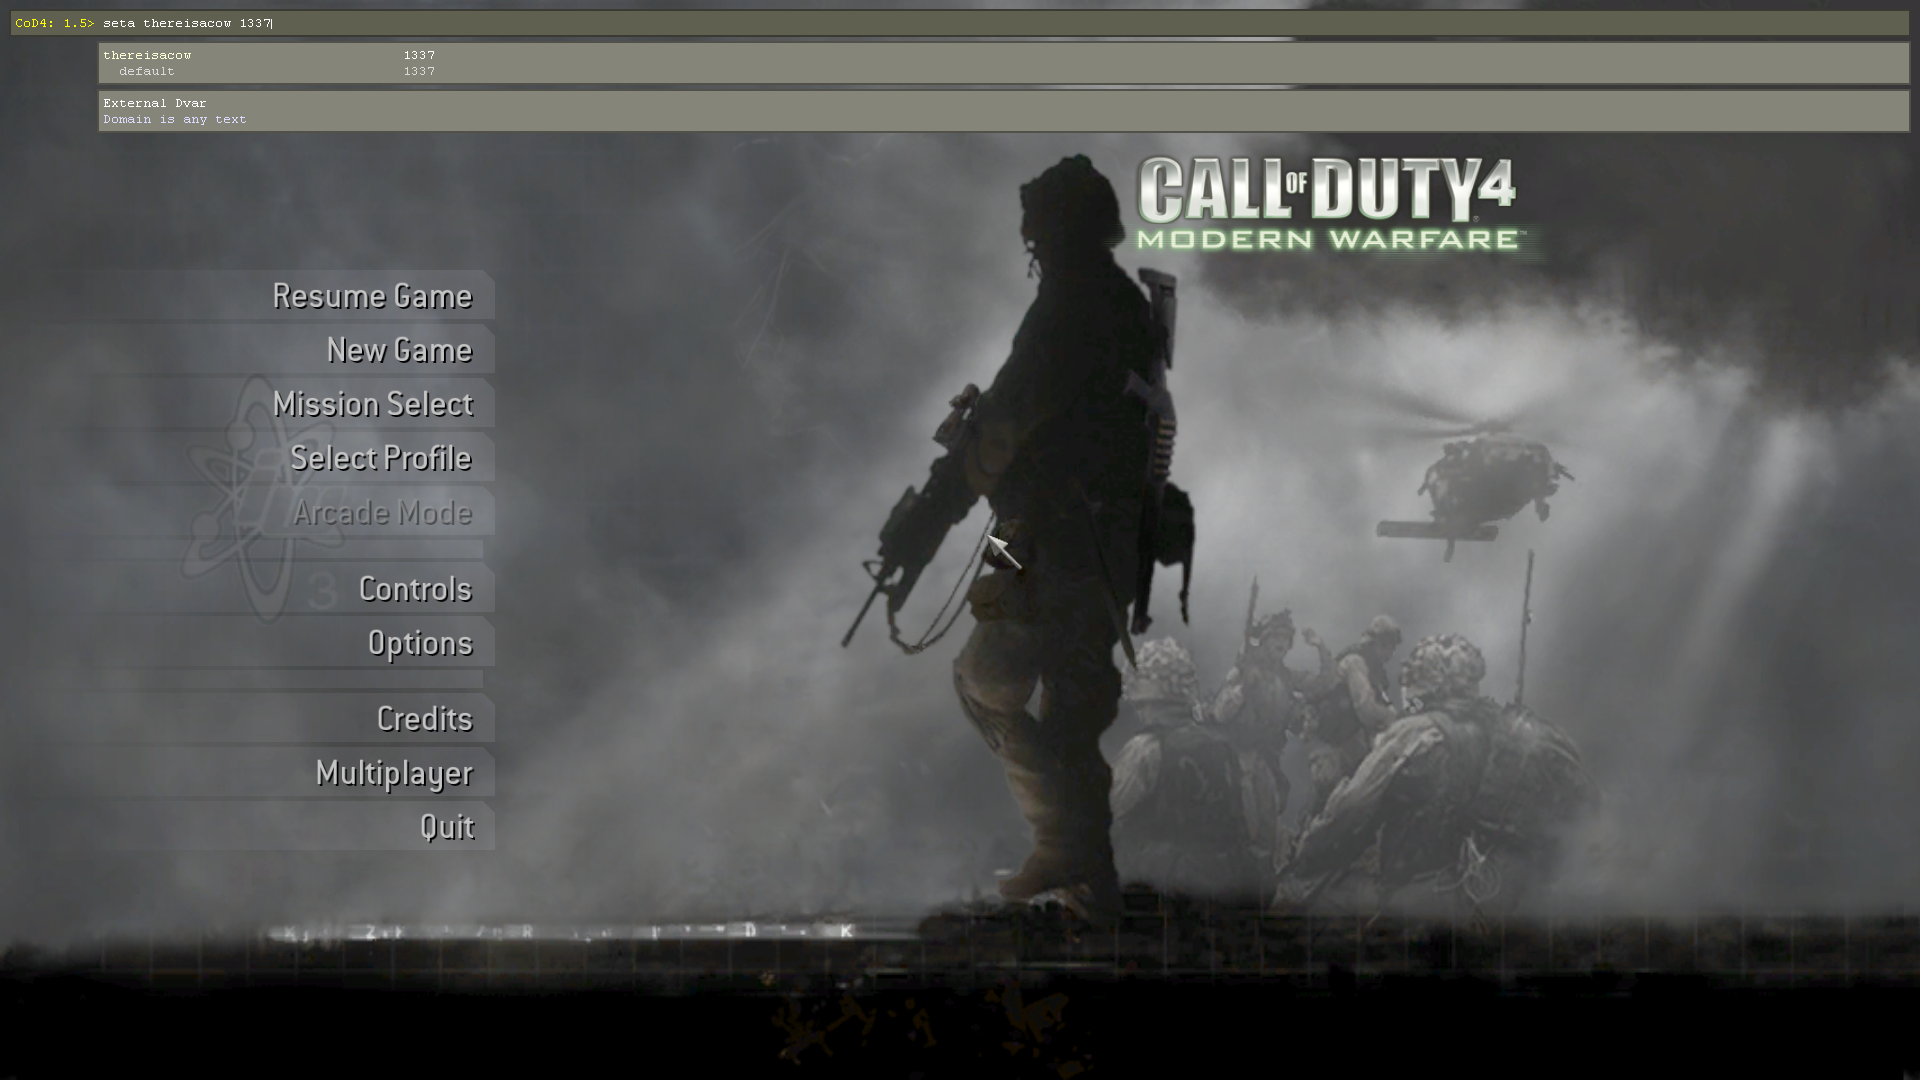 Developer console | Call of Duty Wiki | FANDOM powered by Wikia